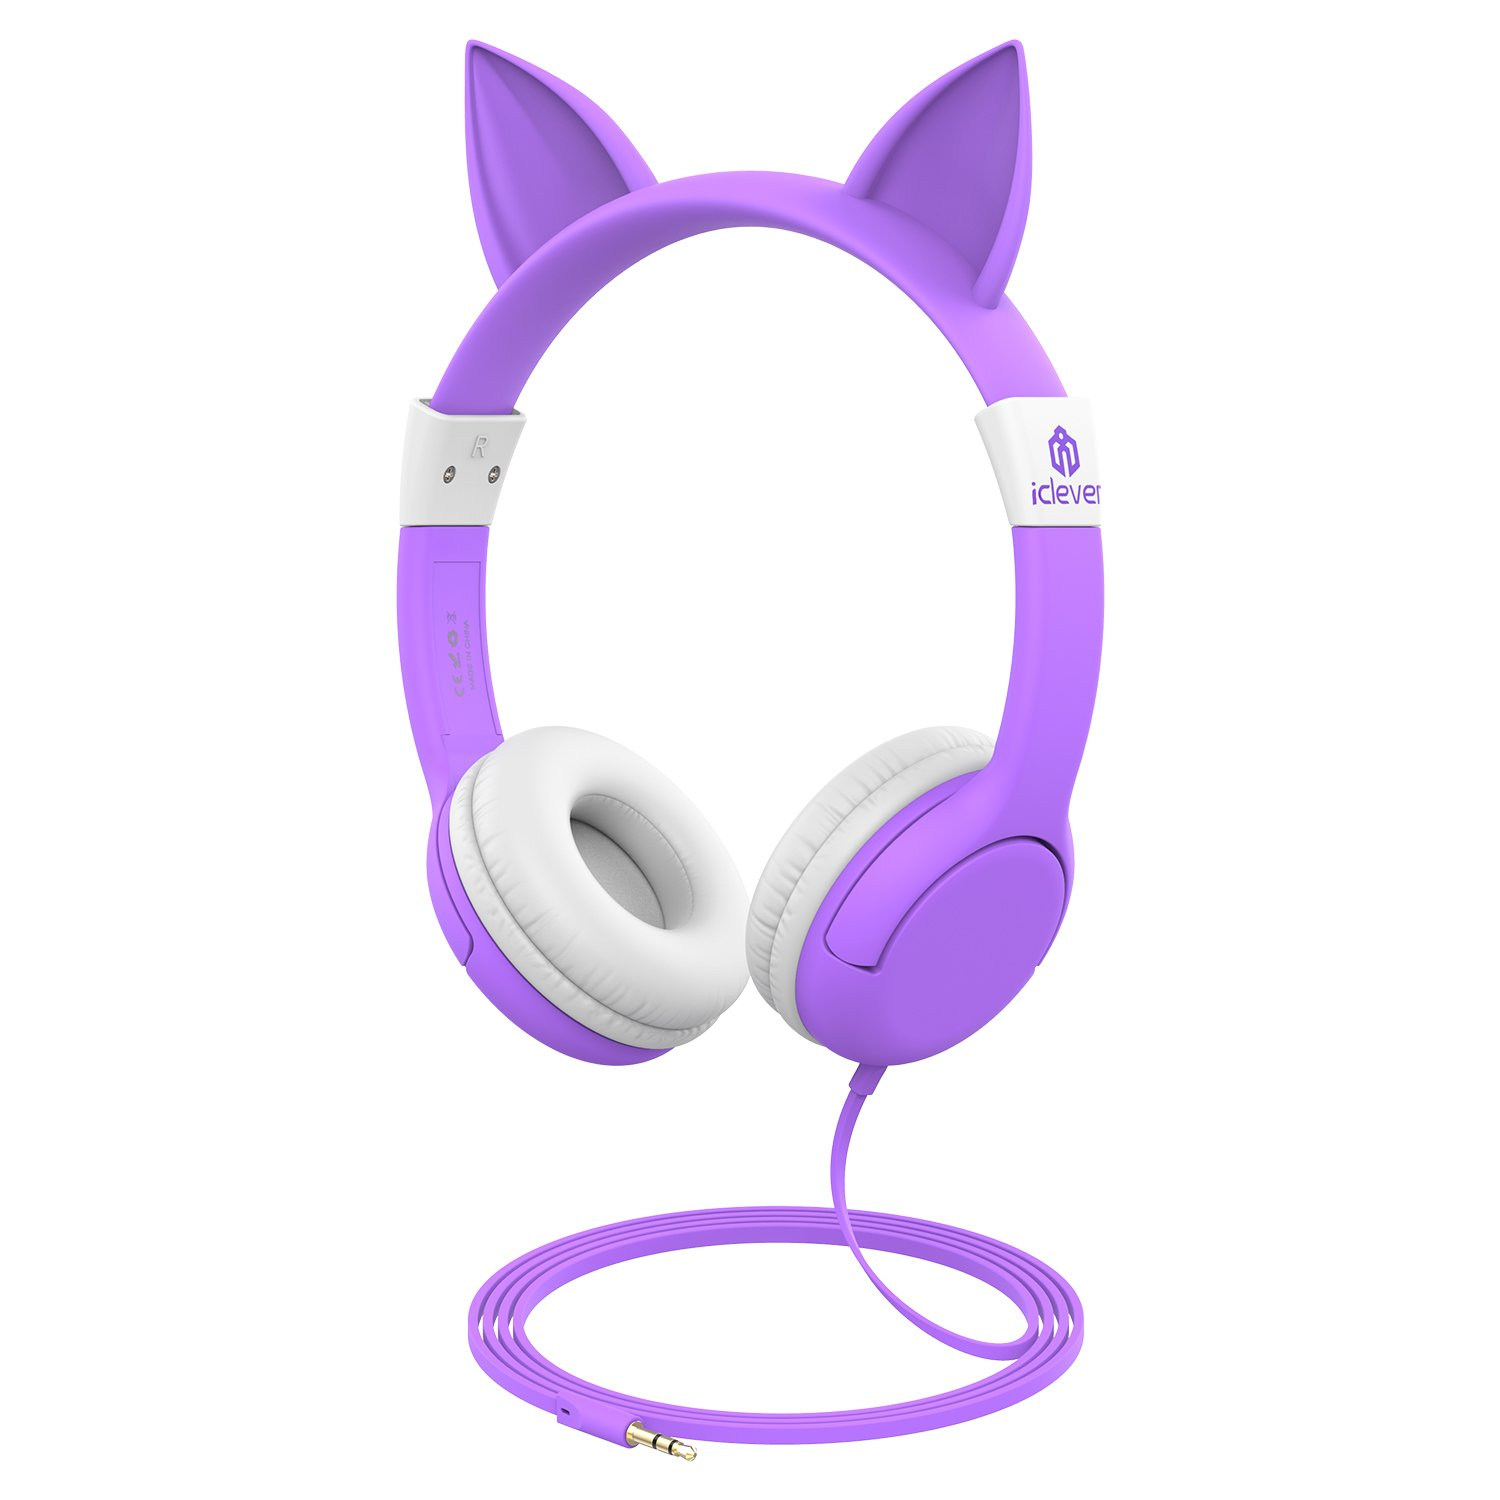 iClever Kids Headphones - Cat-inspired Wired On-ear Headphones for kids, 85dB Volume Control, Food Grade Silicone, Lightweight, Cat-inspired Design, 3.5mm Jack - Childrens Headphones, Purple